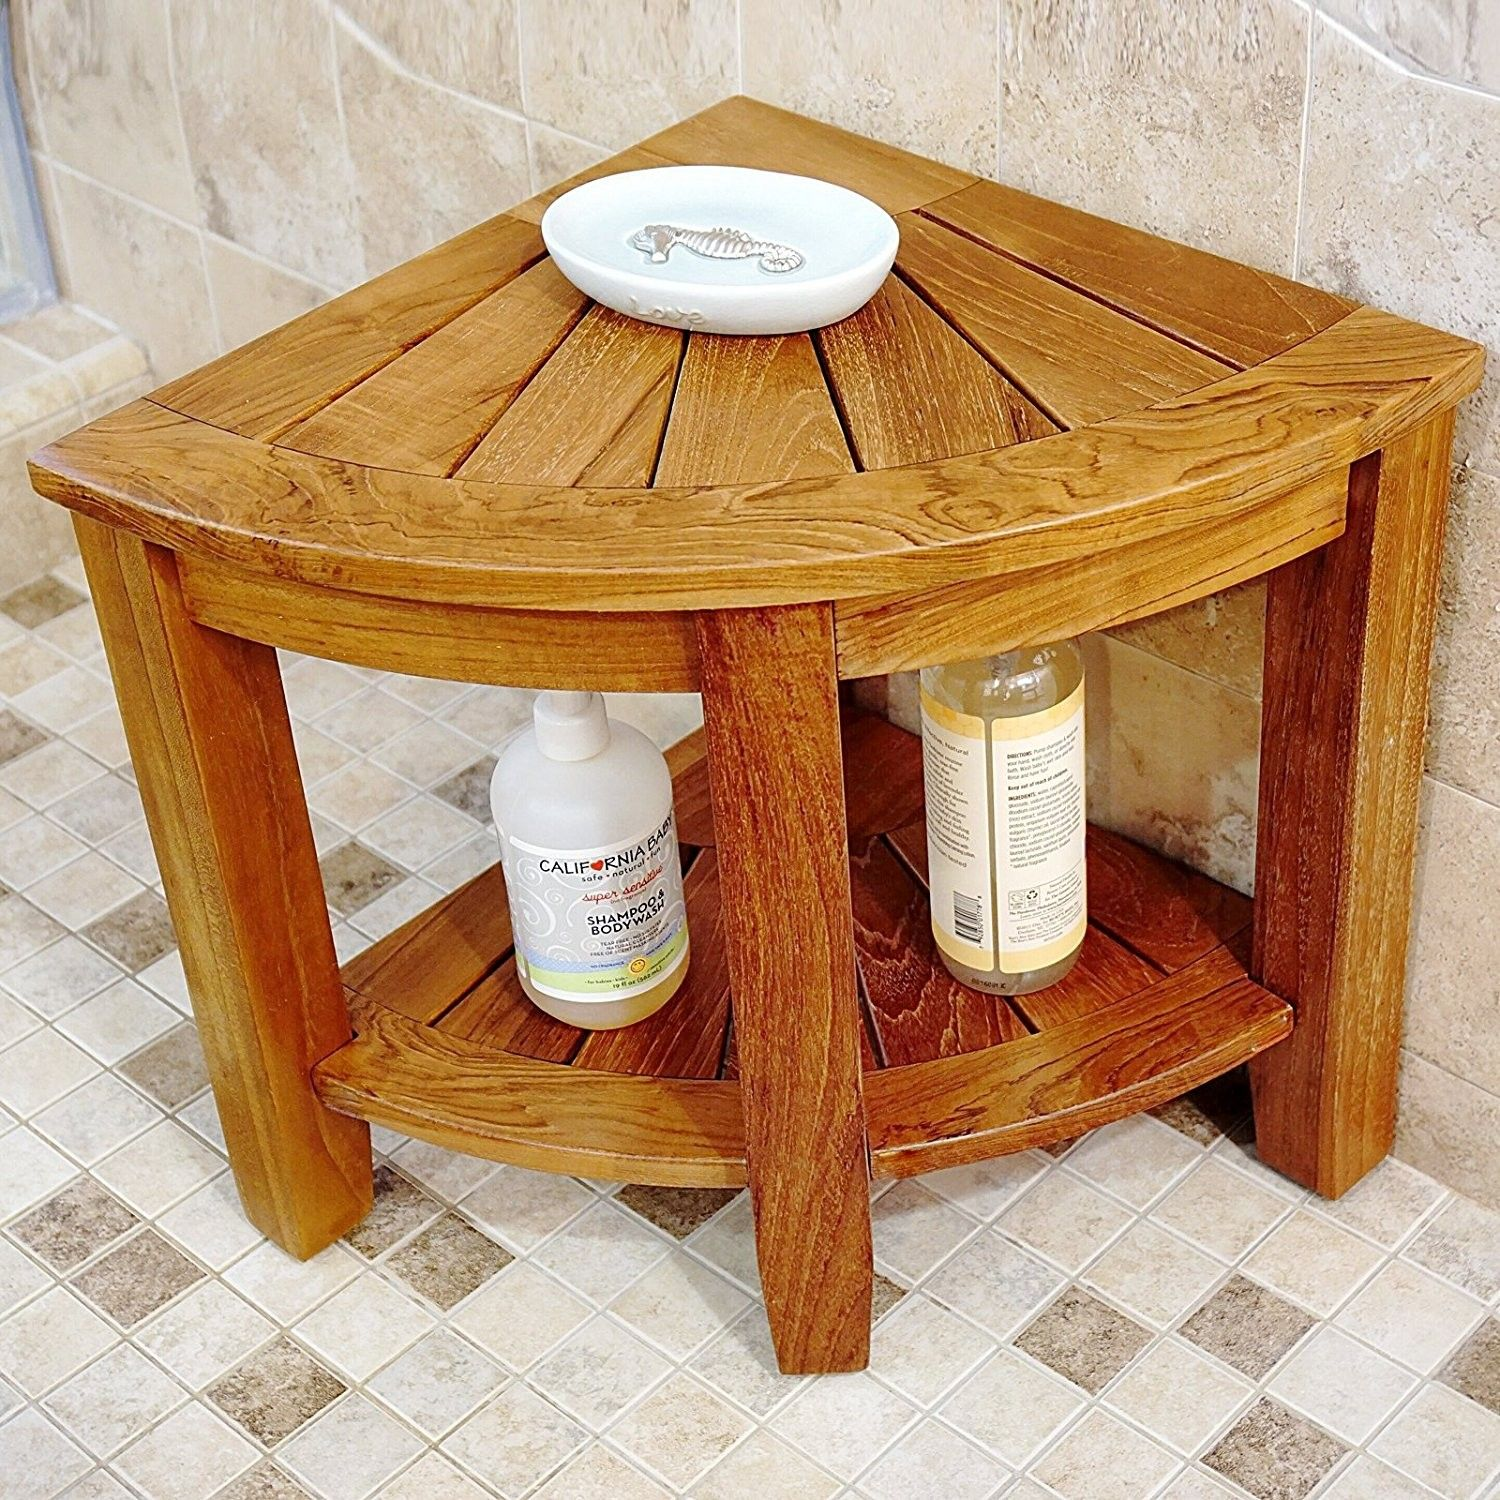 2 Tier Teak Shower Seat | Shower seat and Products